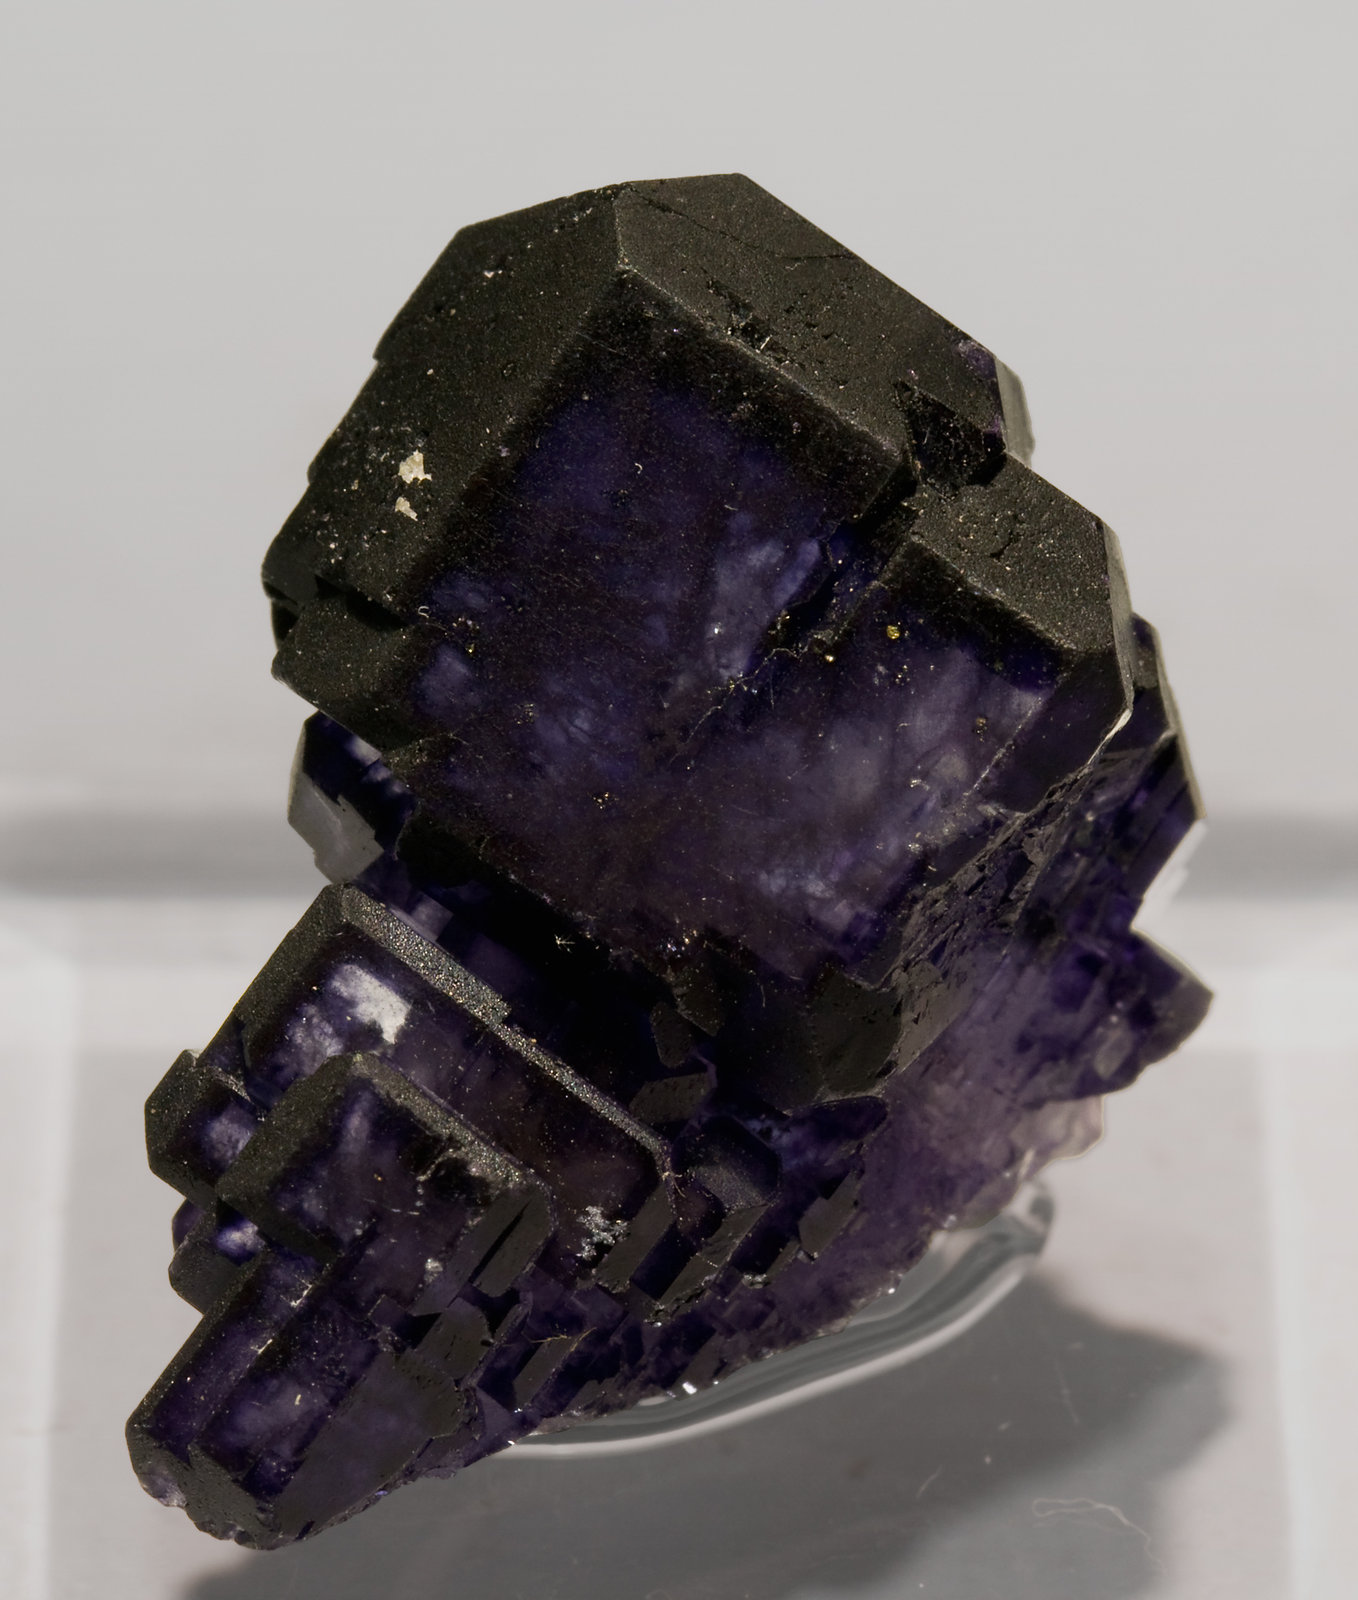 specimens/s_imagesS6/Fluorite-X56RS6.jpg